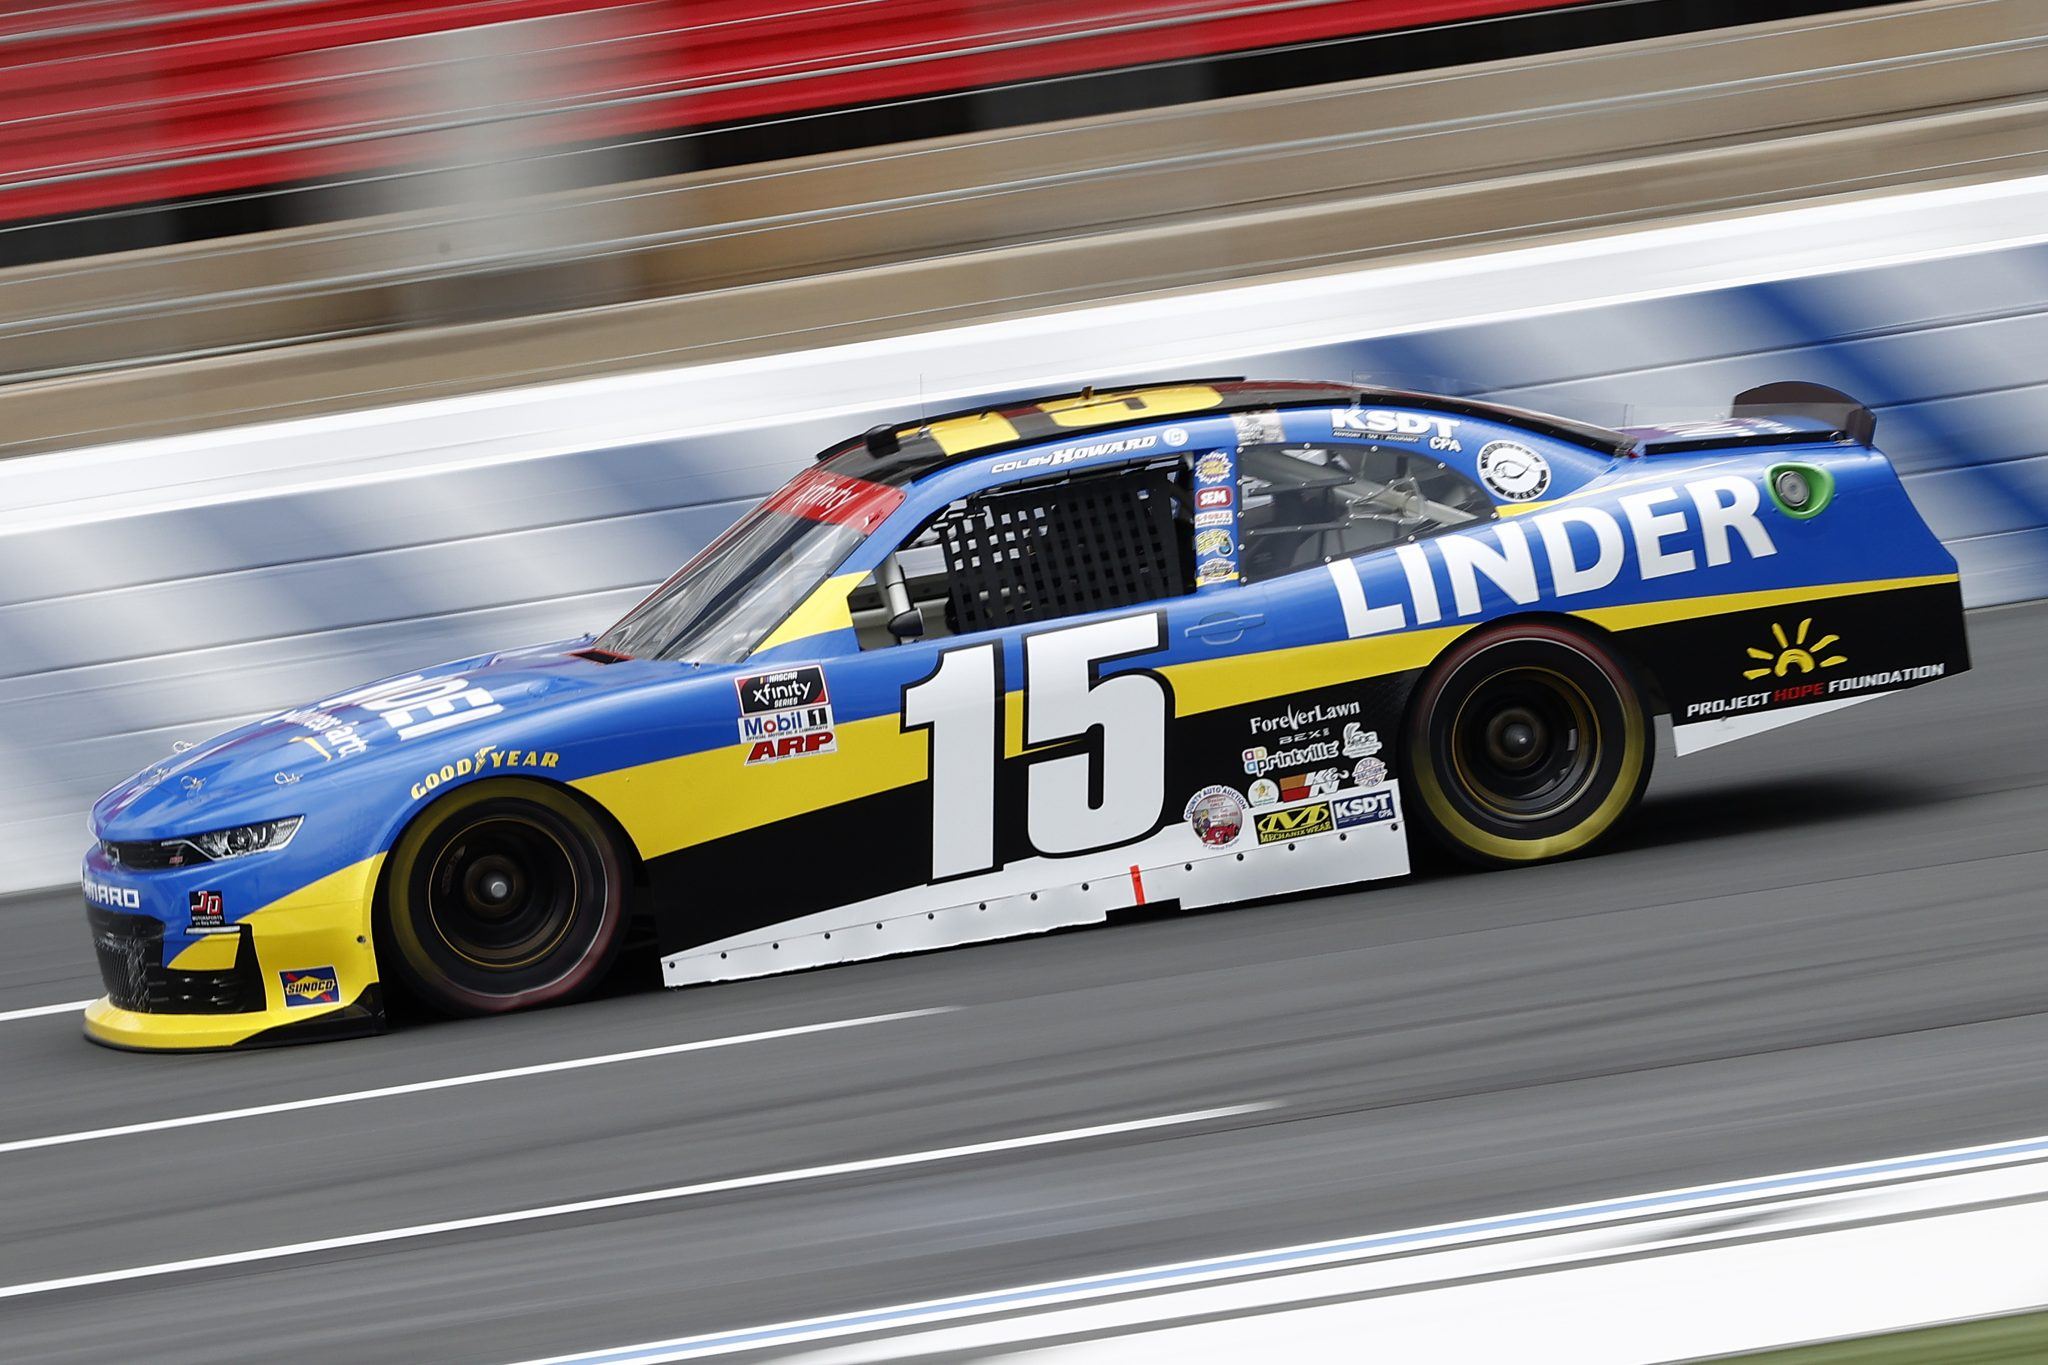 CONCORD, NORTH CAROLINA - MAY 28: Colby Howard, driver of the #15 Linder Chevrolet, drives during practice for the NASCAR Xfinity Series Alsco Uniforms 300 at Charlotte Motor Speedway on May 28, 2021 in Concord, North Carolina. (Photo by Maddie Meyer/Getty Images)   Getty Images